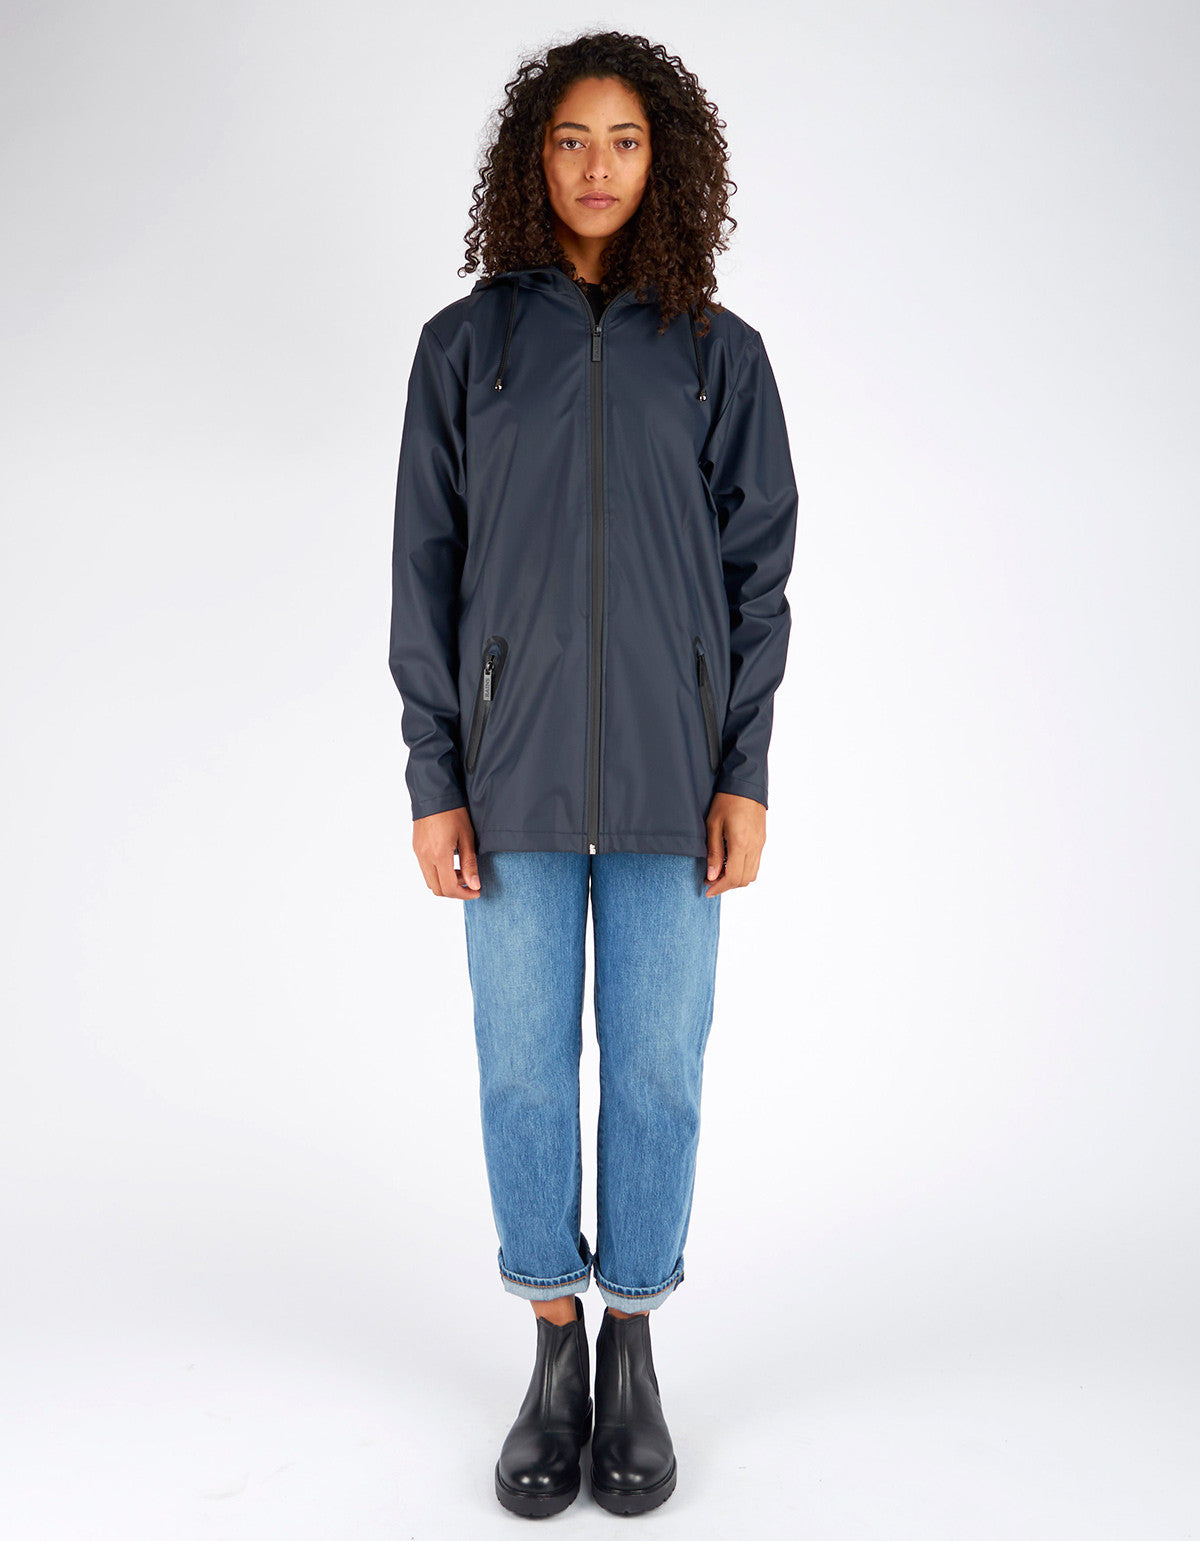 Rains Women's Breaker Jacket Black - Still Life - 6